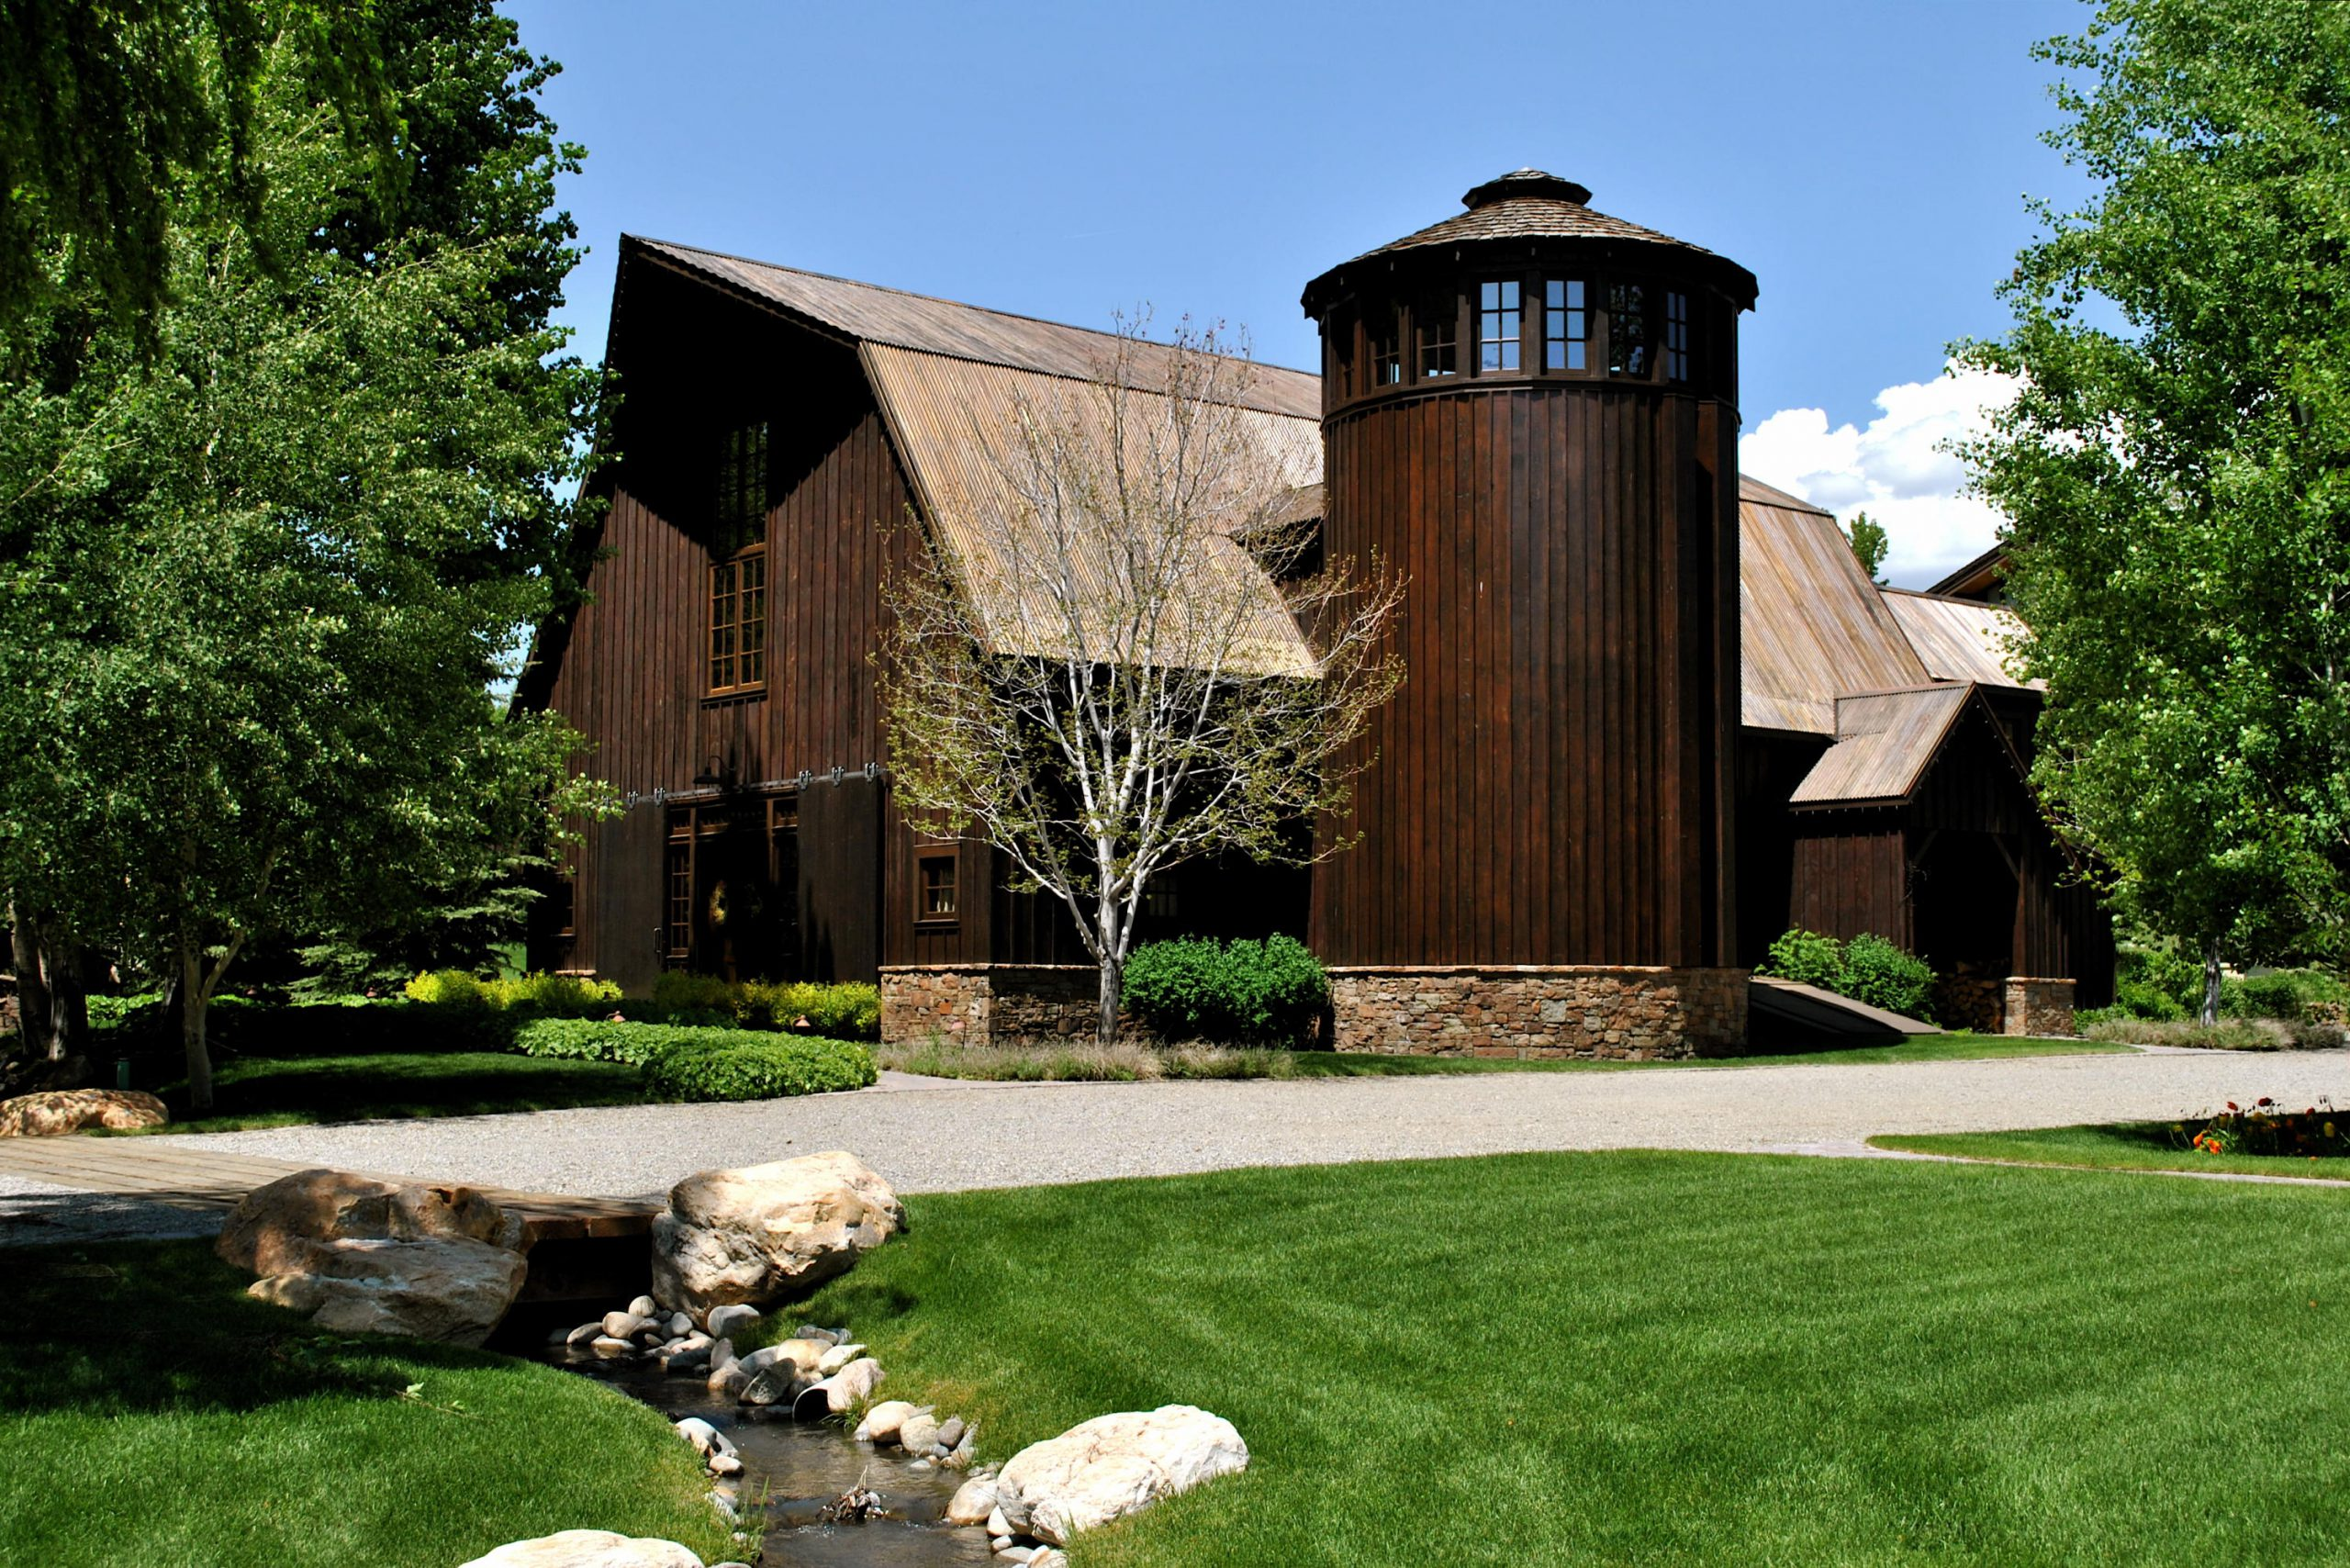 Dream House: Idaho Barn Rustic Compound (1)